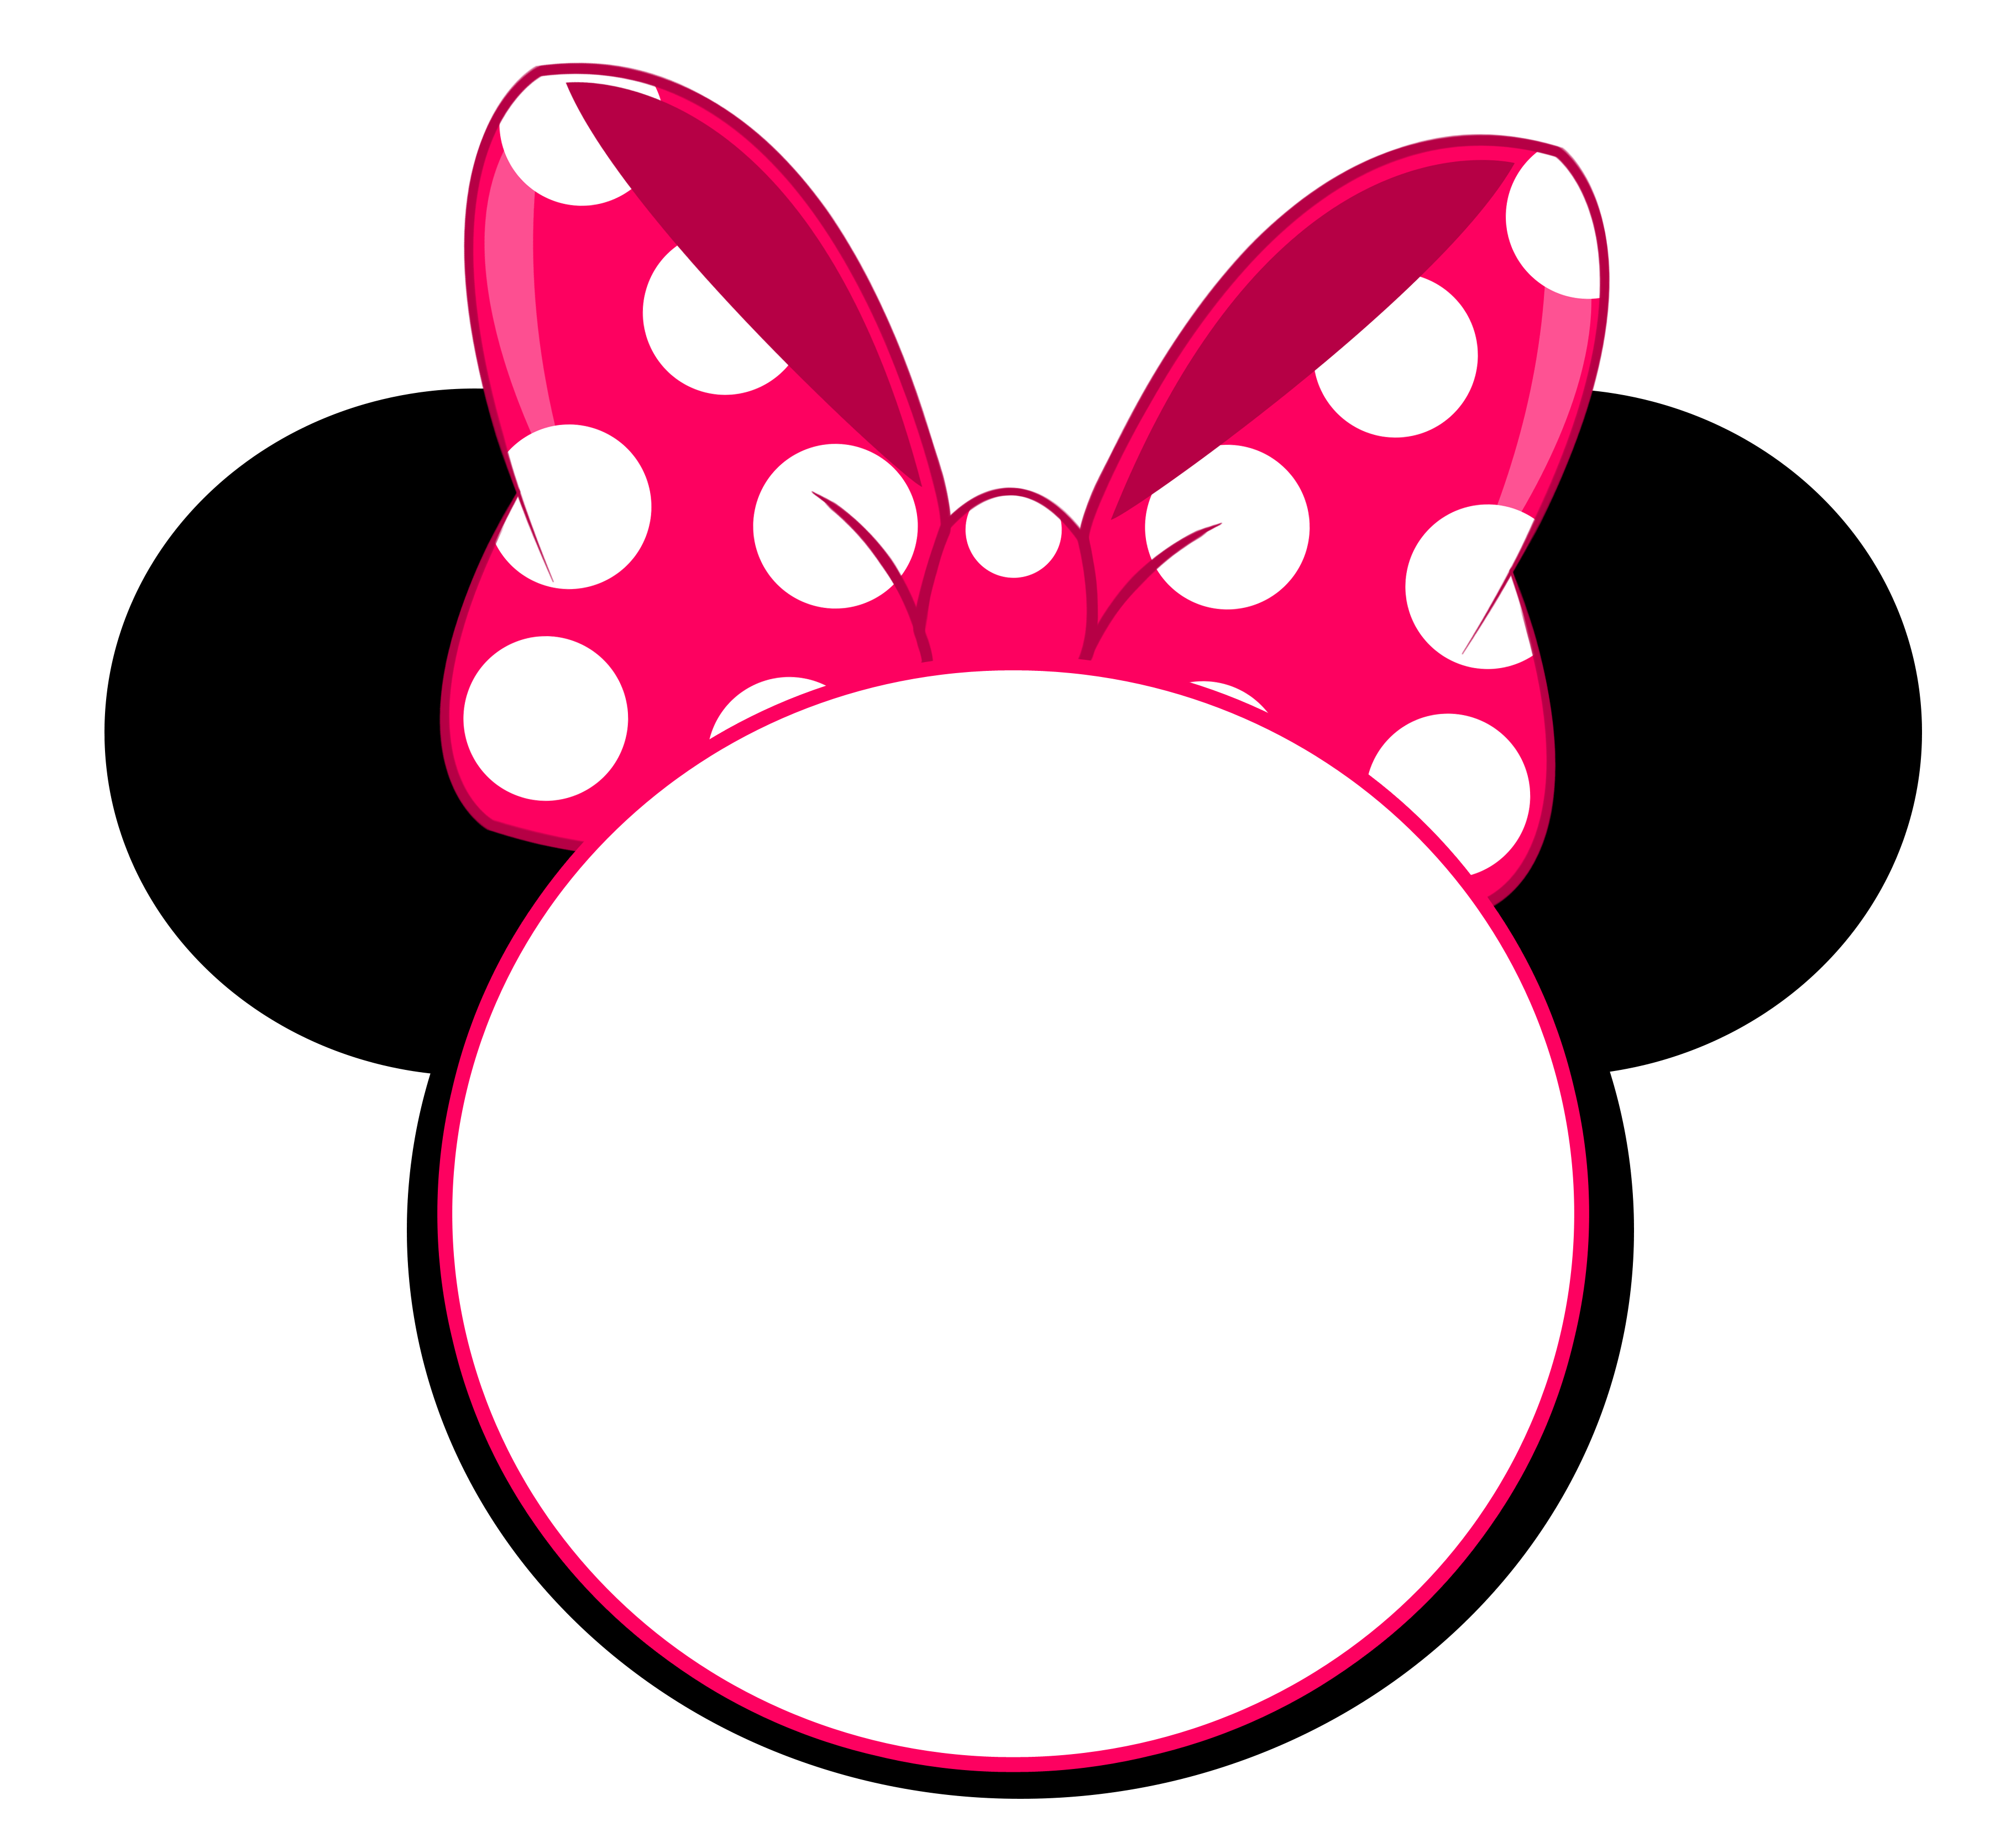 Minnie mouse crown ears clipart banner freeuse library FREE Minnie Mouse Head Invitation Template | Pinterest | Invitation ... banner freeuse library